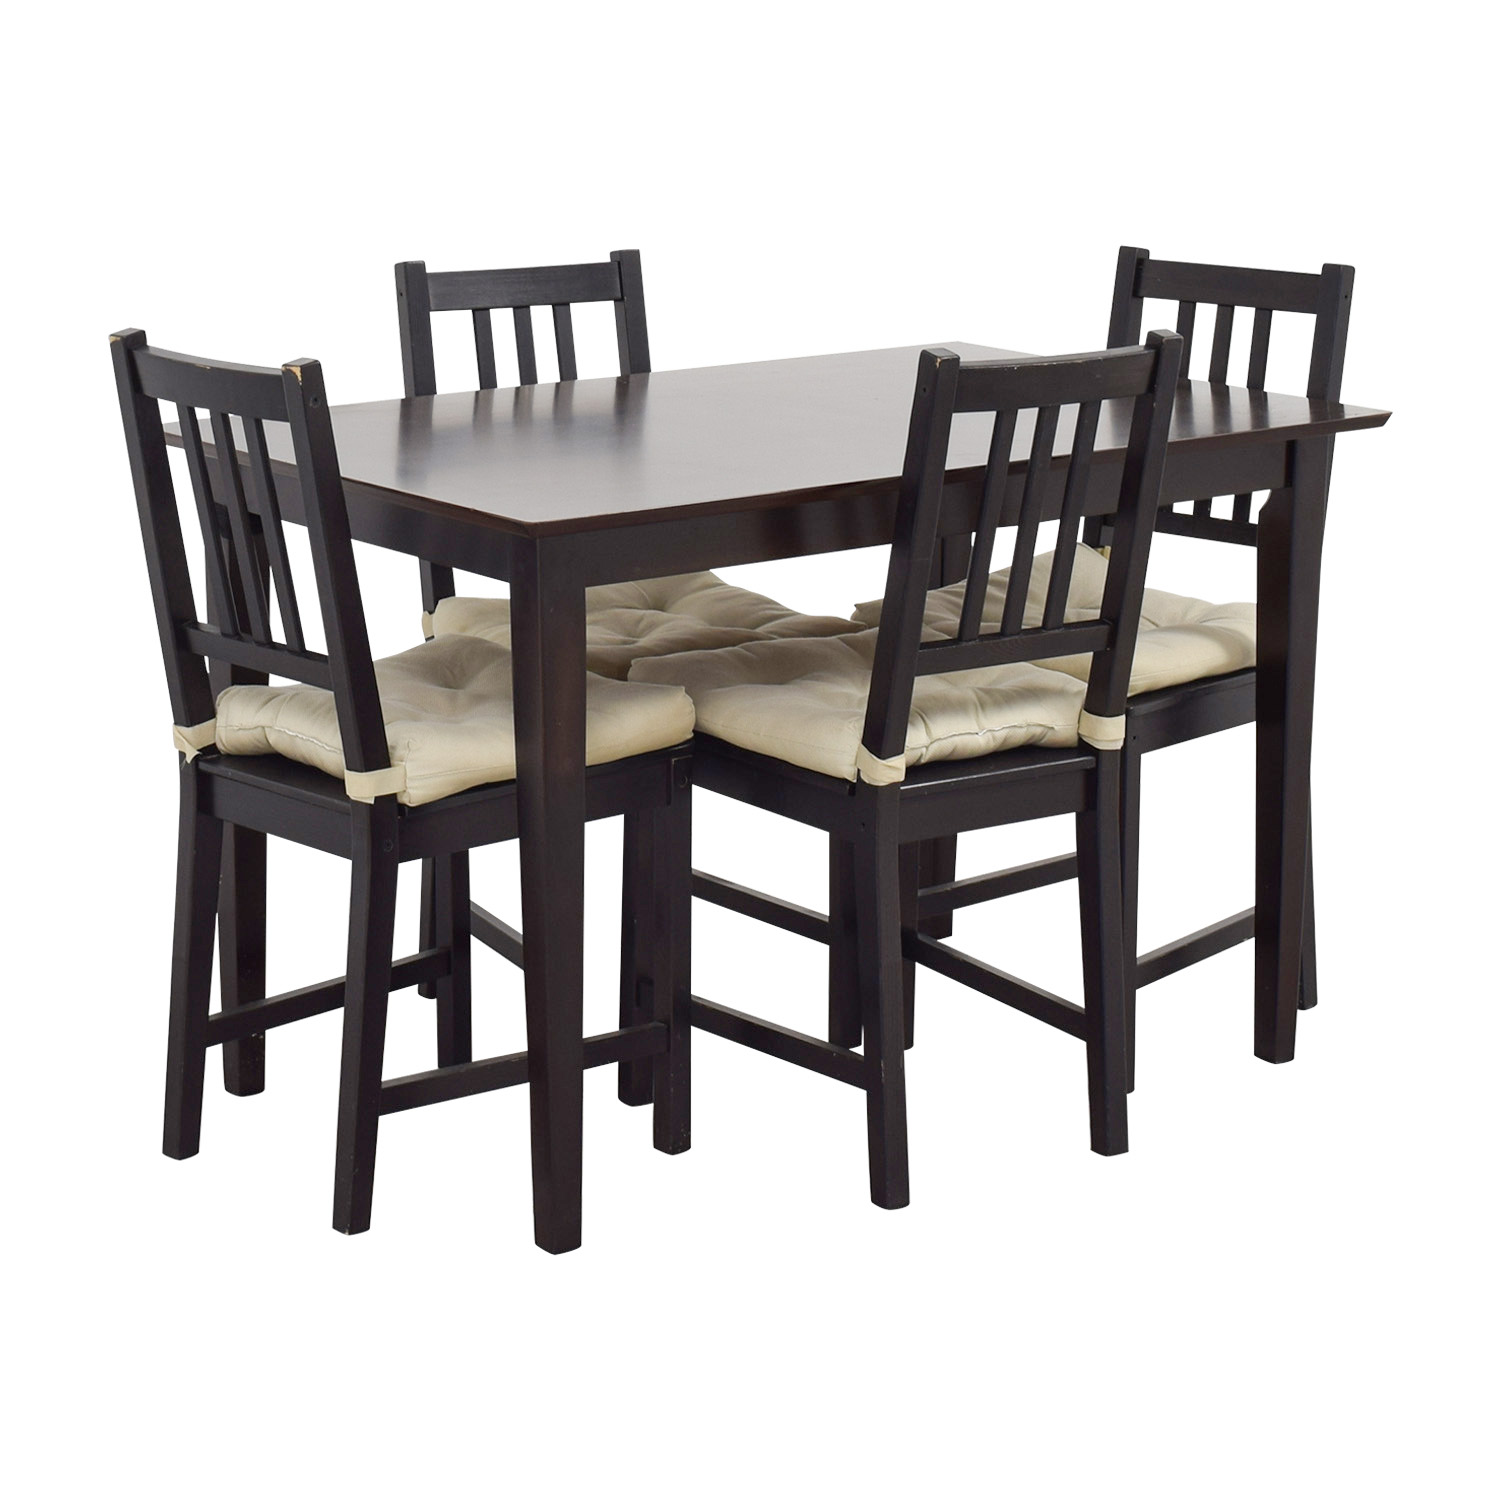 63 off ikea ikea brown wood dining set tables. Black Bedroom Furniture Sets. Home Design Ideas